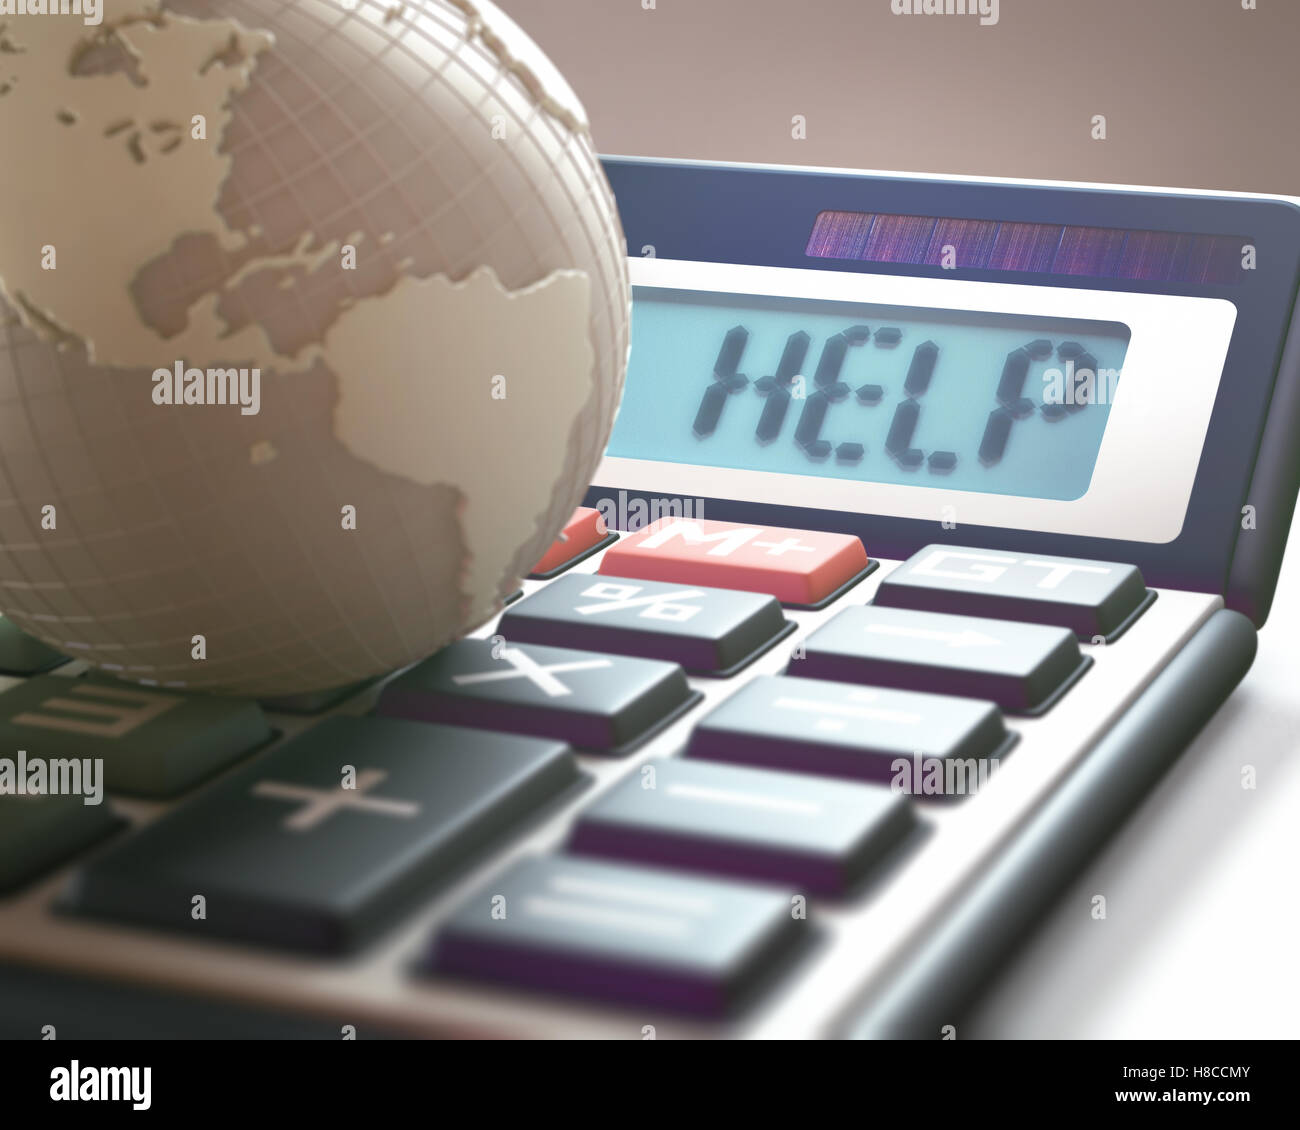 Calculator with the word HELP on the display, representing world financial crisis. 3D illustration, concept image - Stock Image